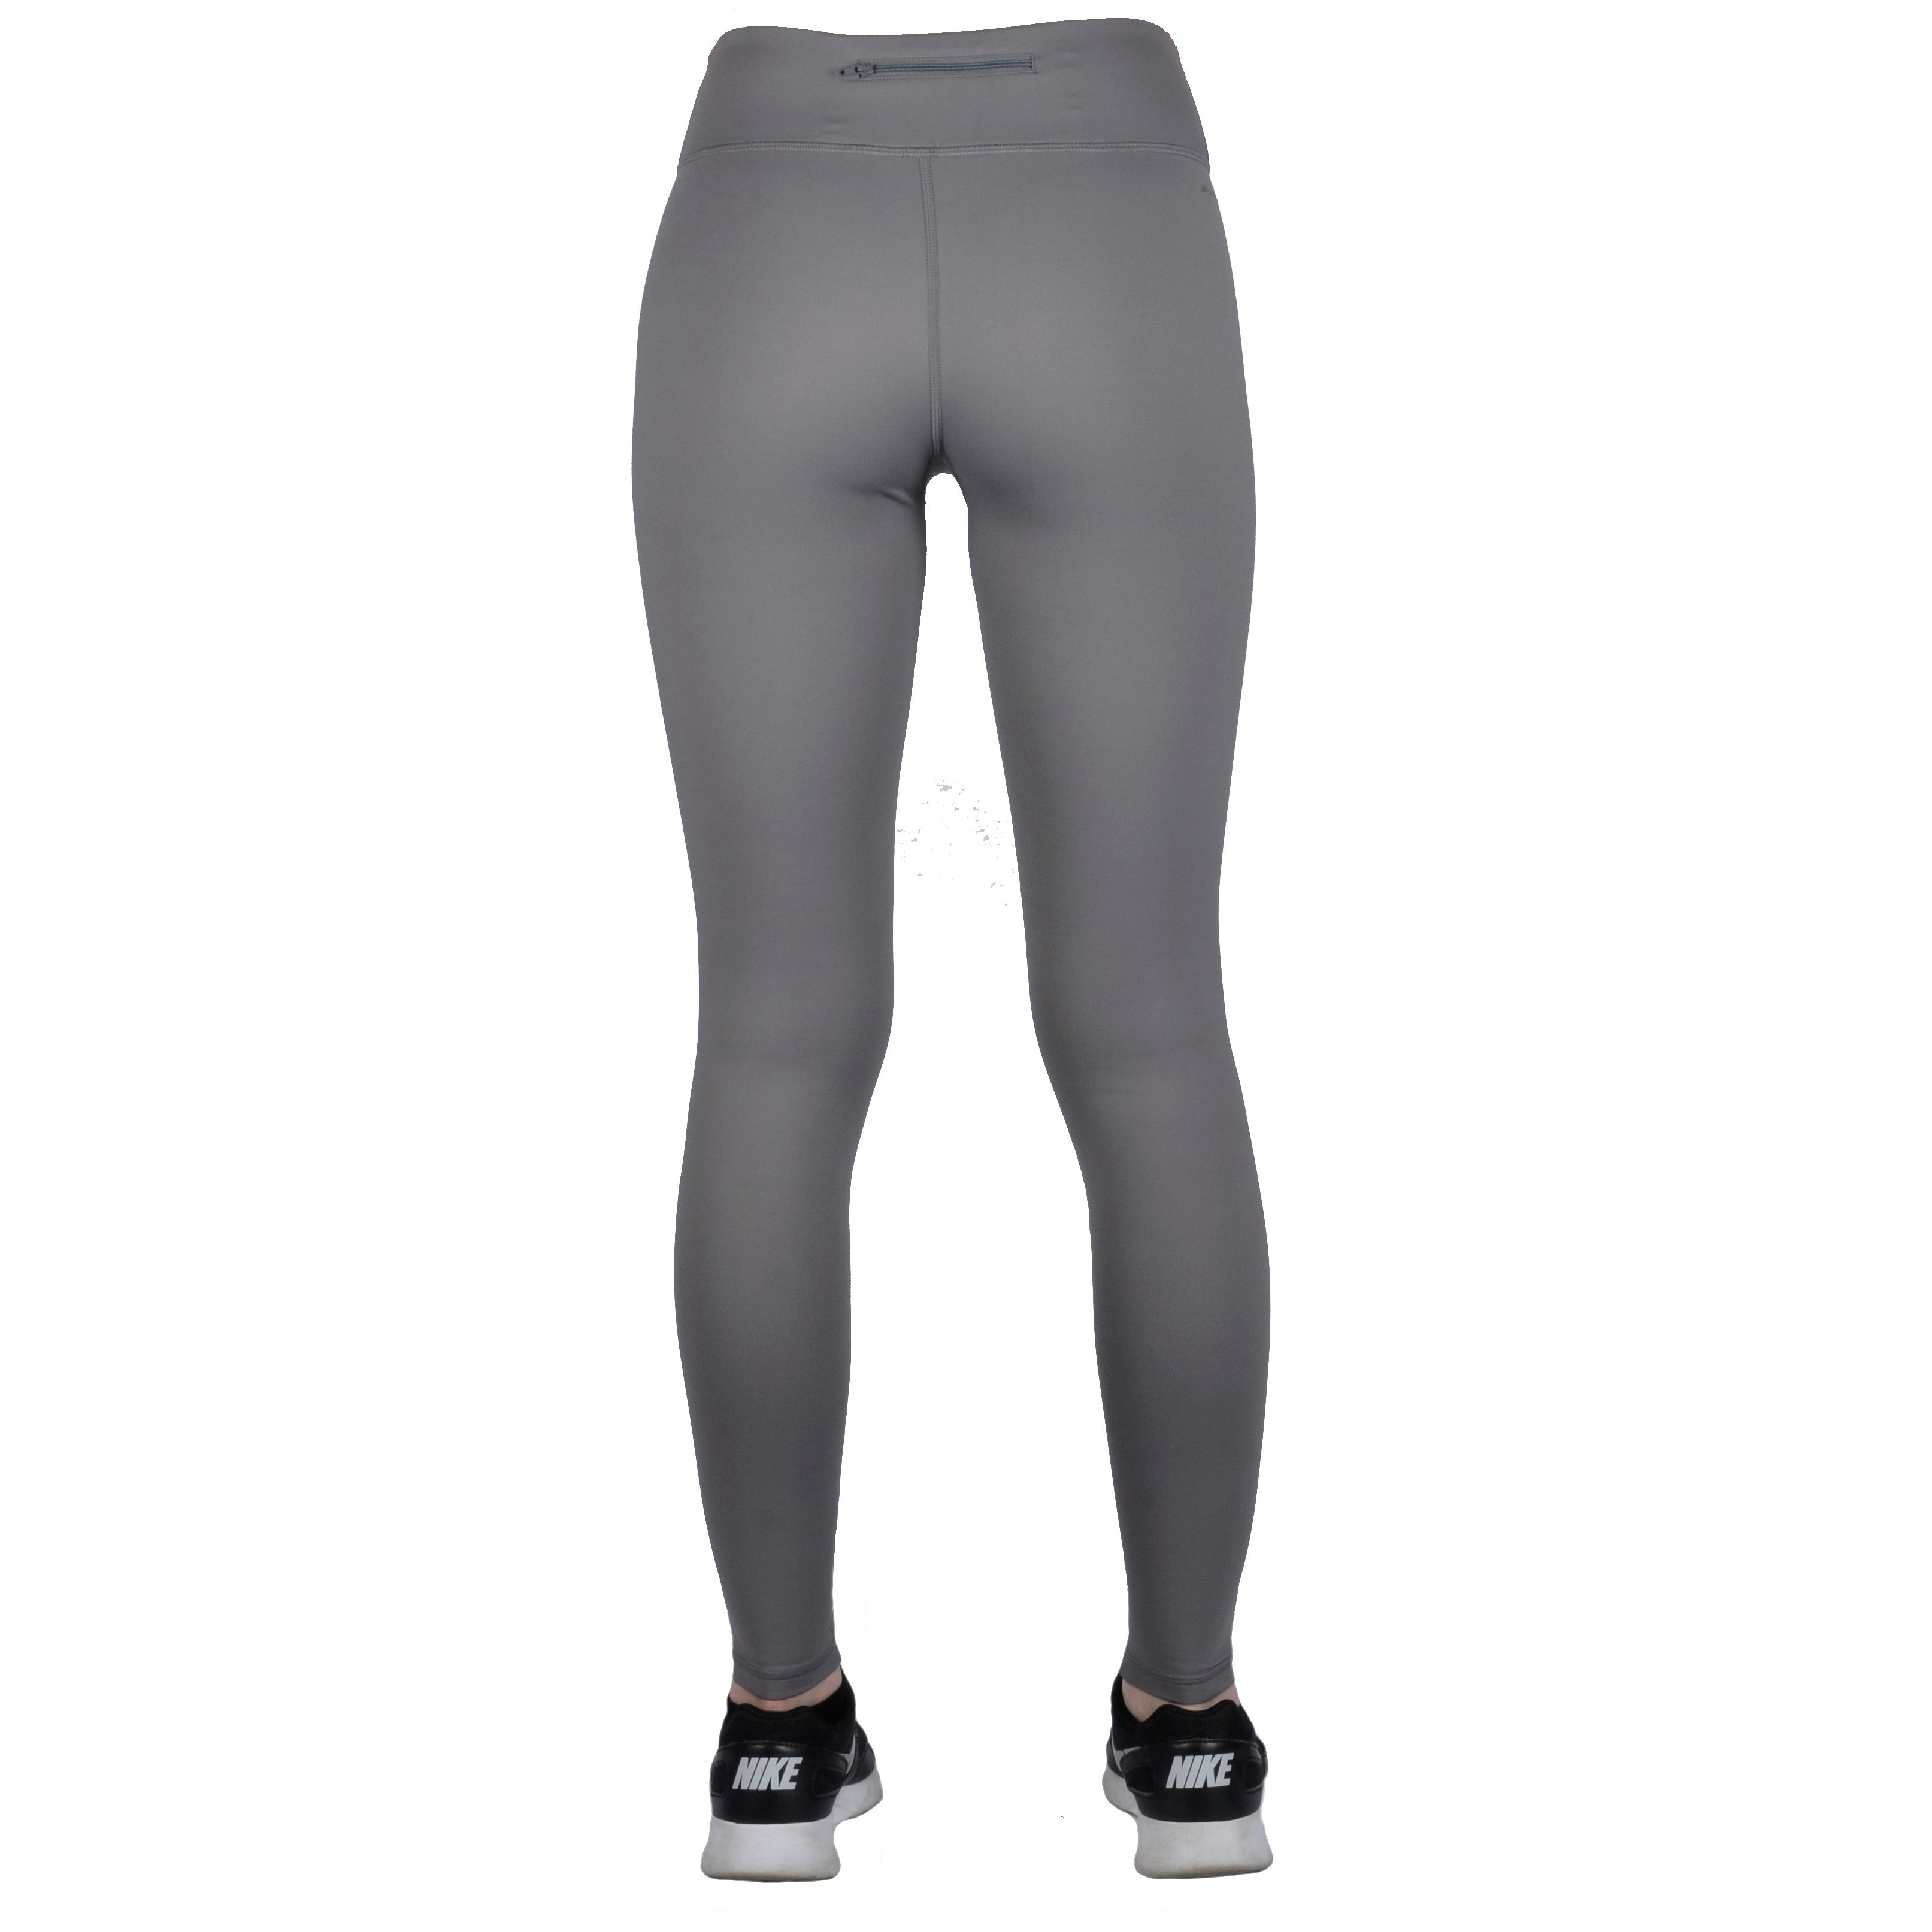 e5bfd796ca ... WOMENS COMPRESSION PANTS - dynamicathletica ...